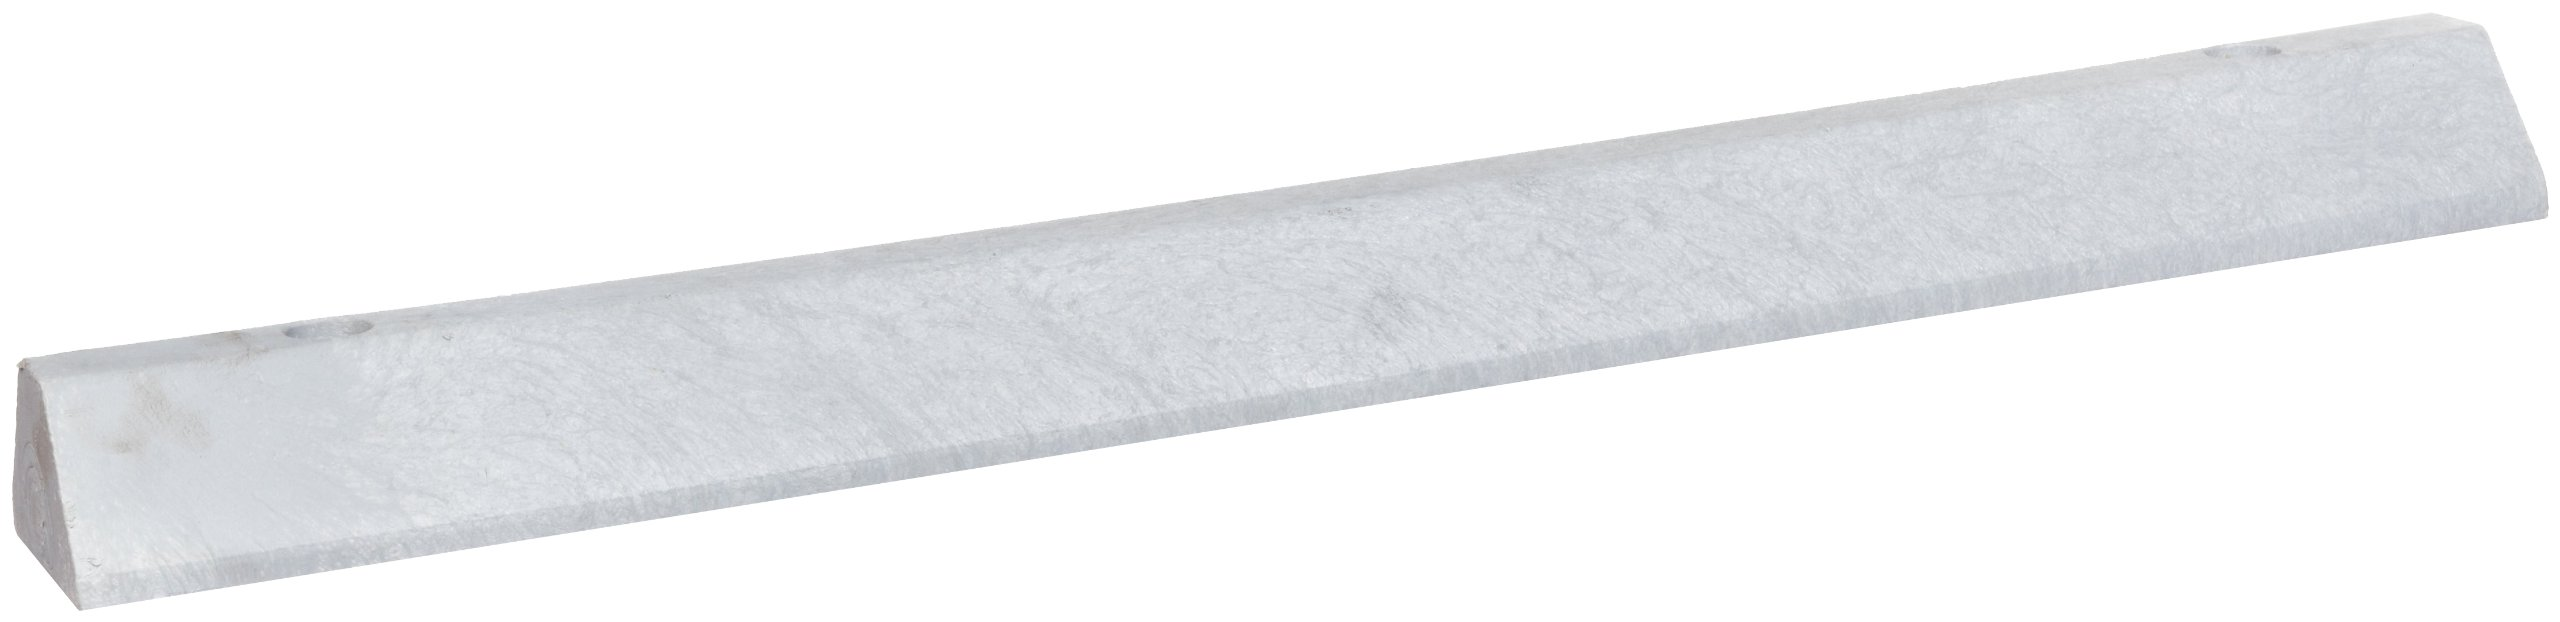 Lotblocks CS4S-SG Plastic Deluxe Car Parking Stop with Hardware, Gray, 48'' Length, 6'' Width, 4'' Height